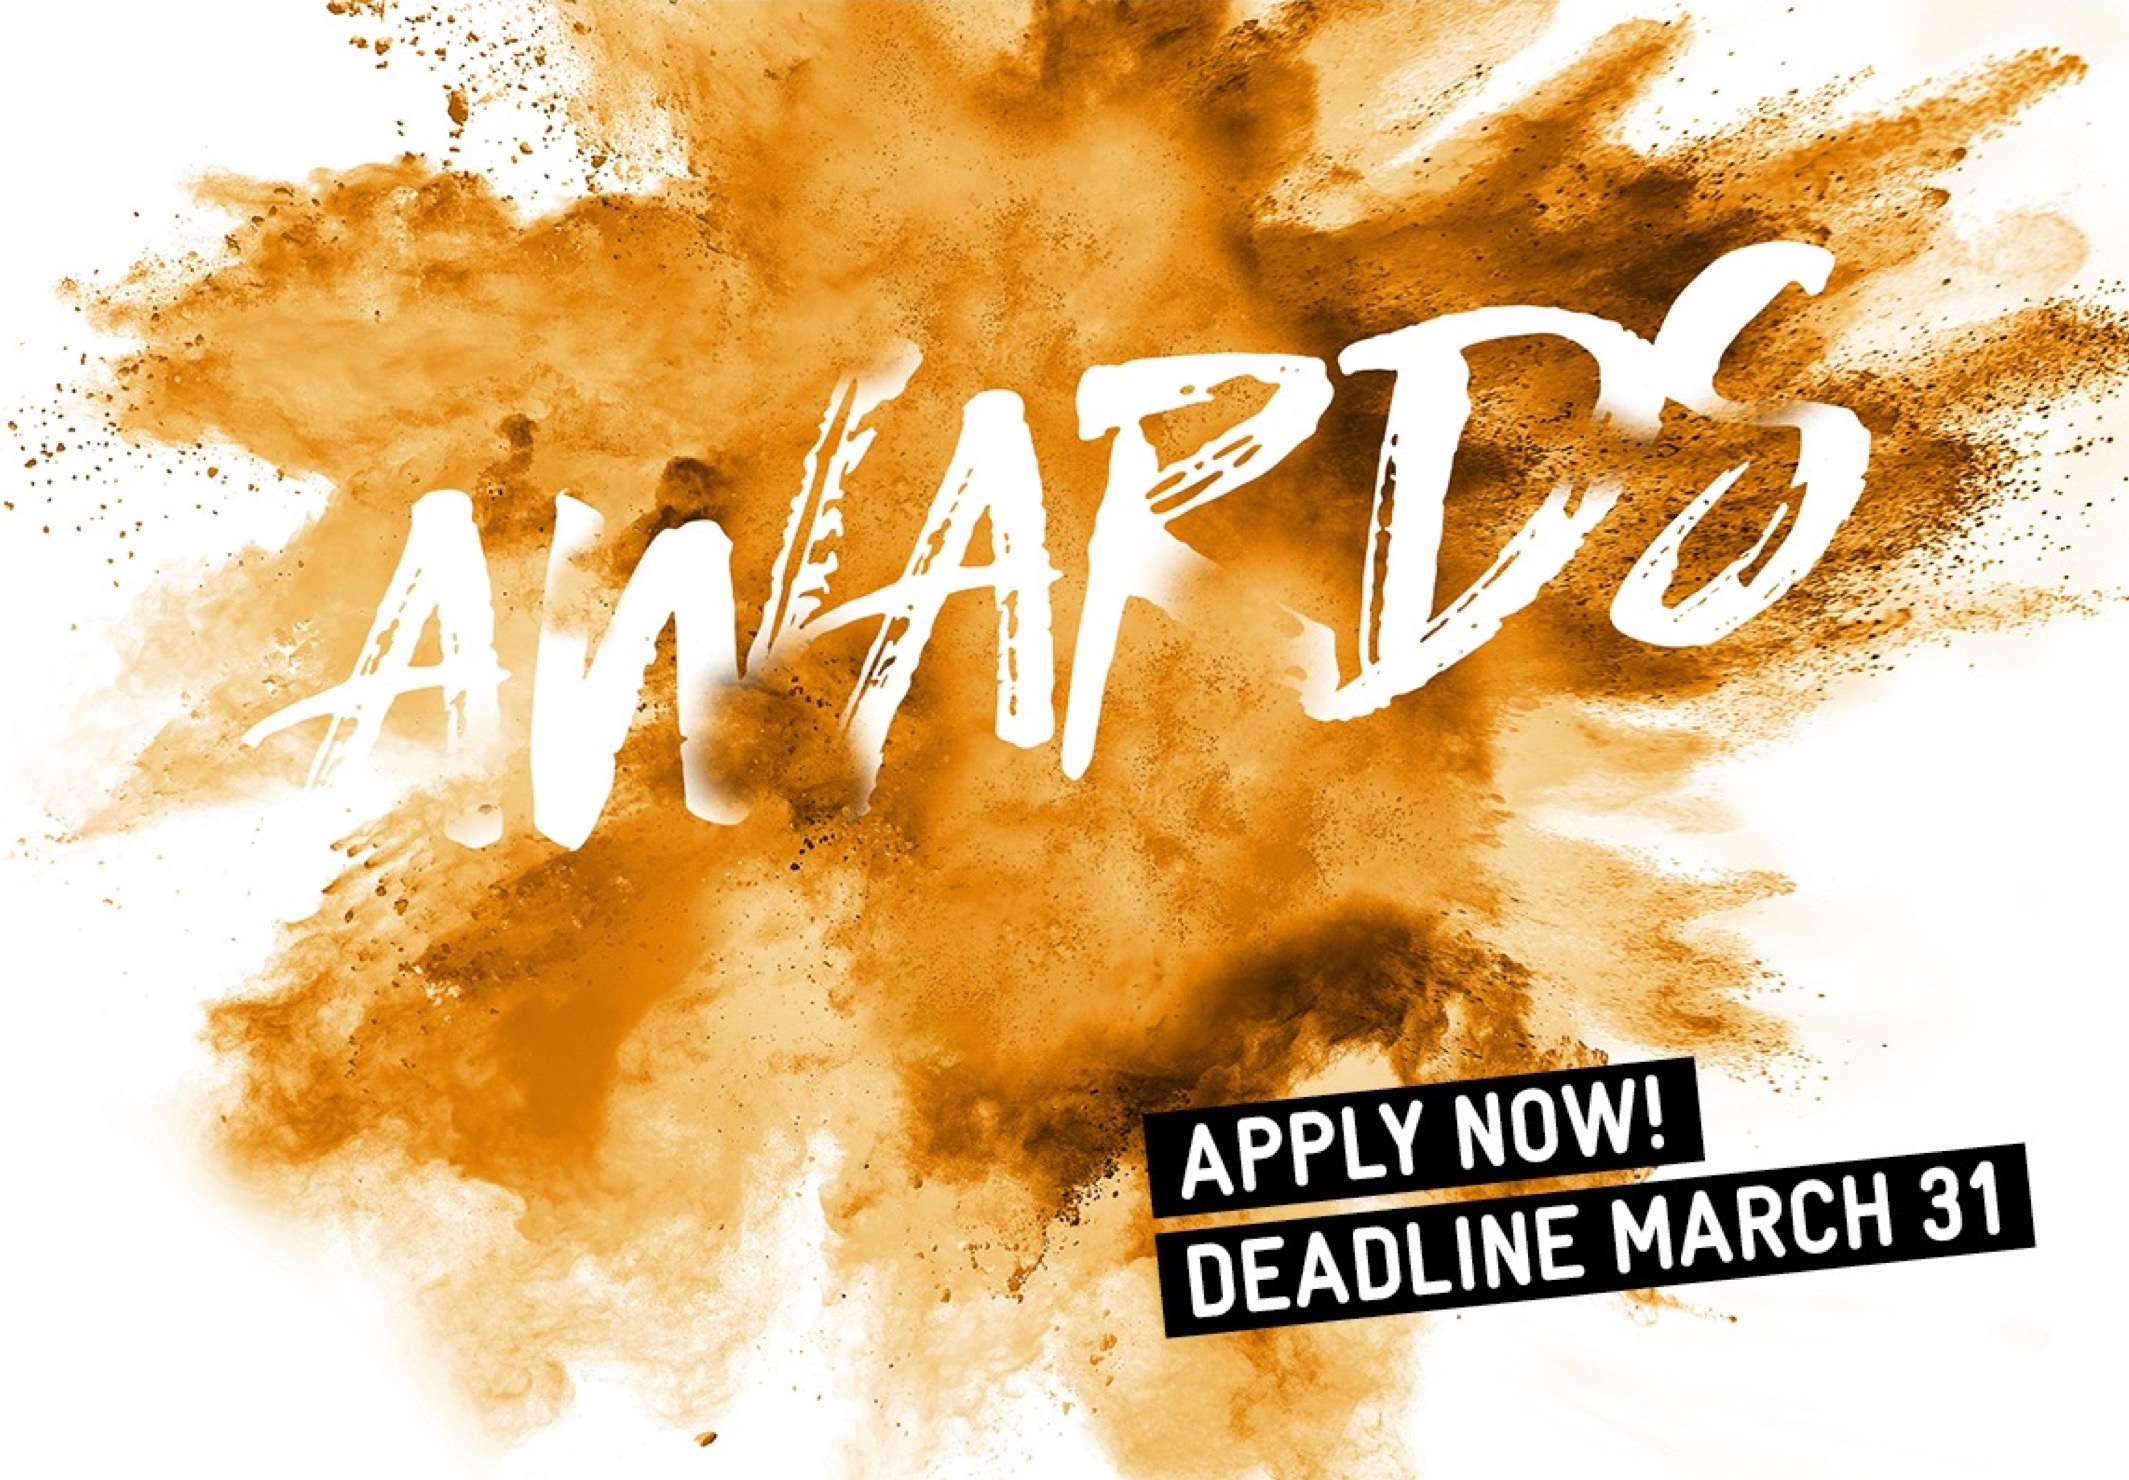 SEIF-Awards_2021_apply-now_01